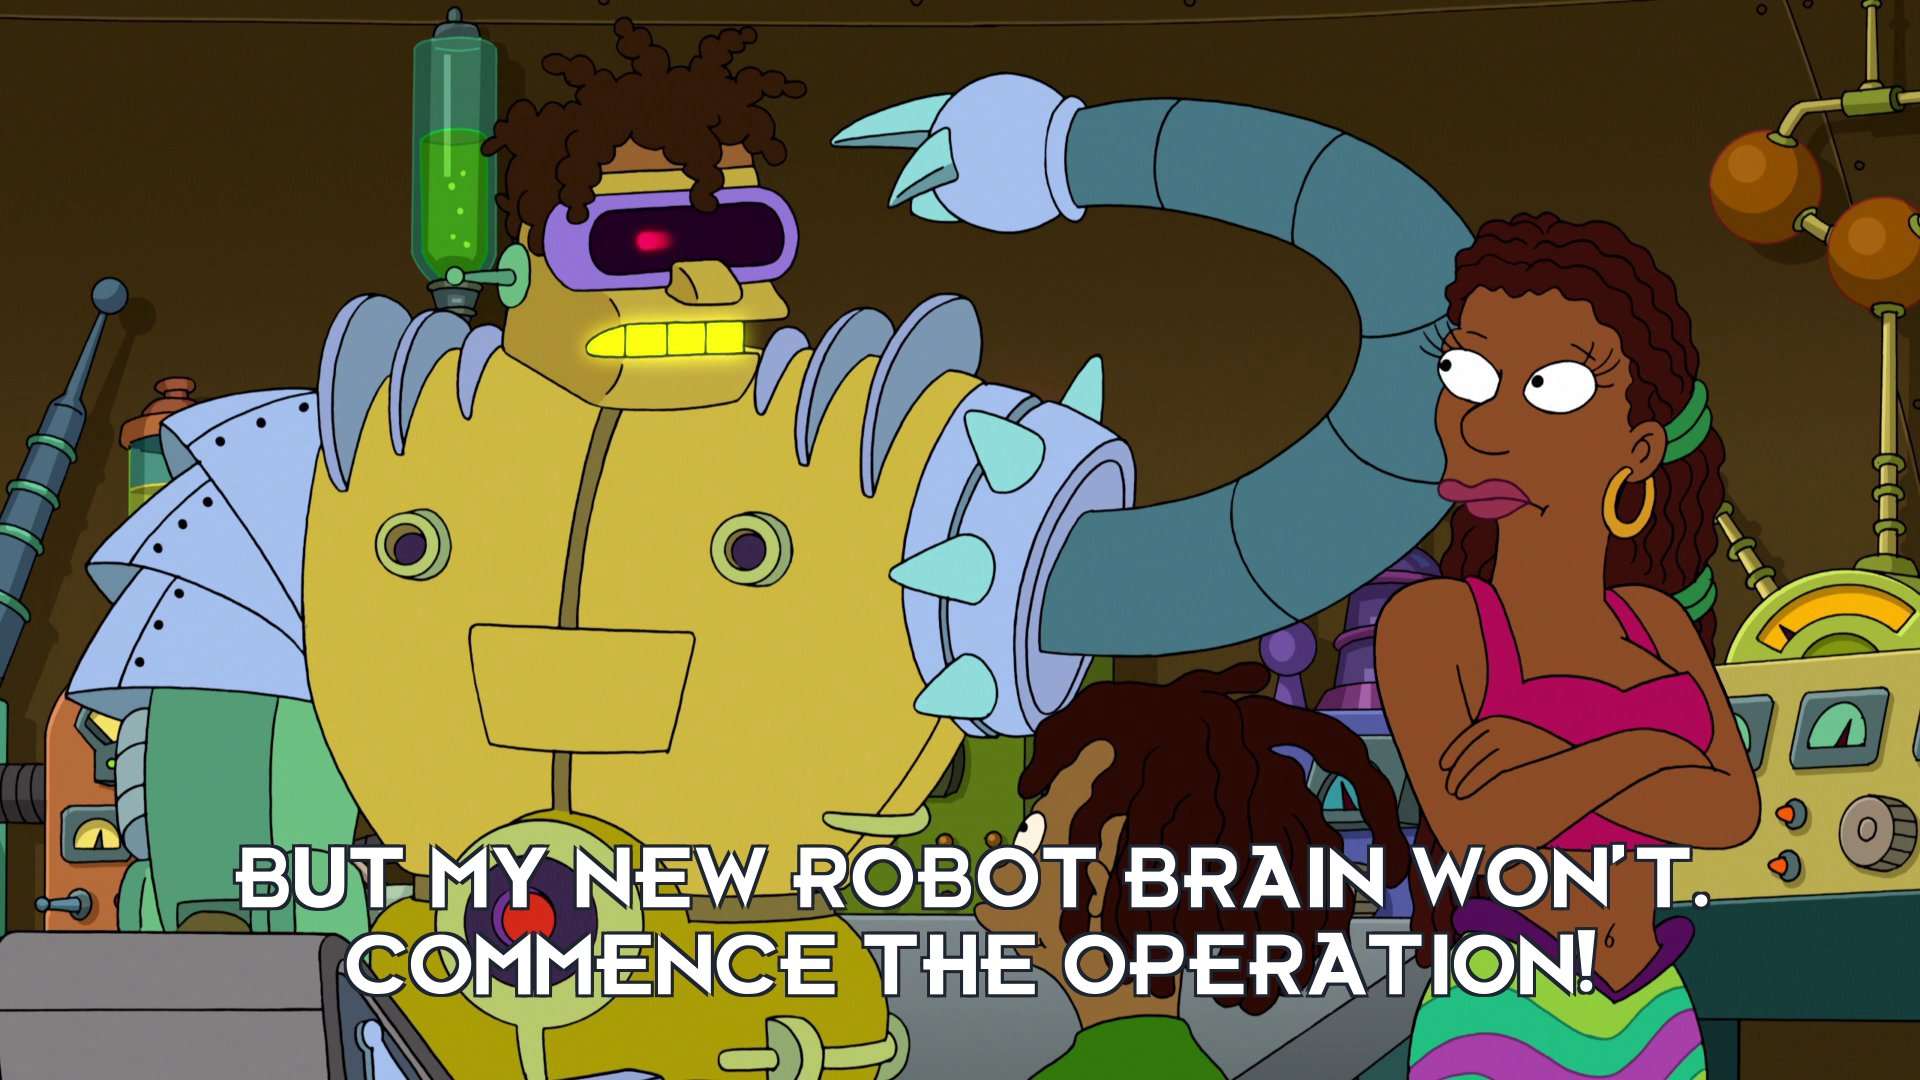 Mecha-Hermes: But my new robot brain won't. Commence the operation!